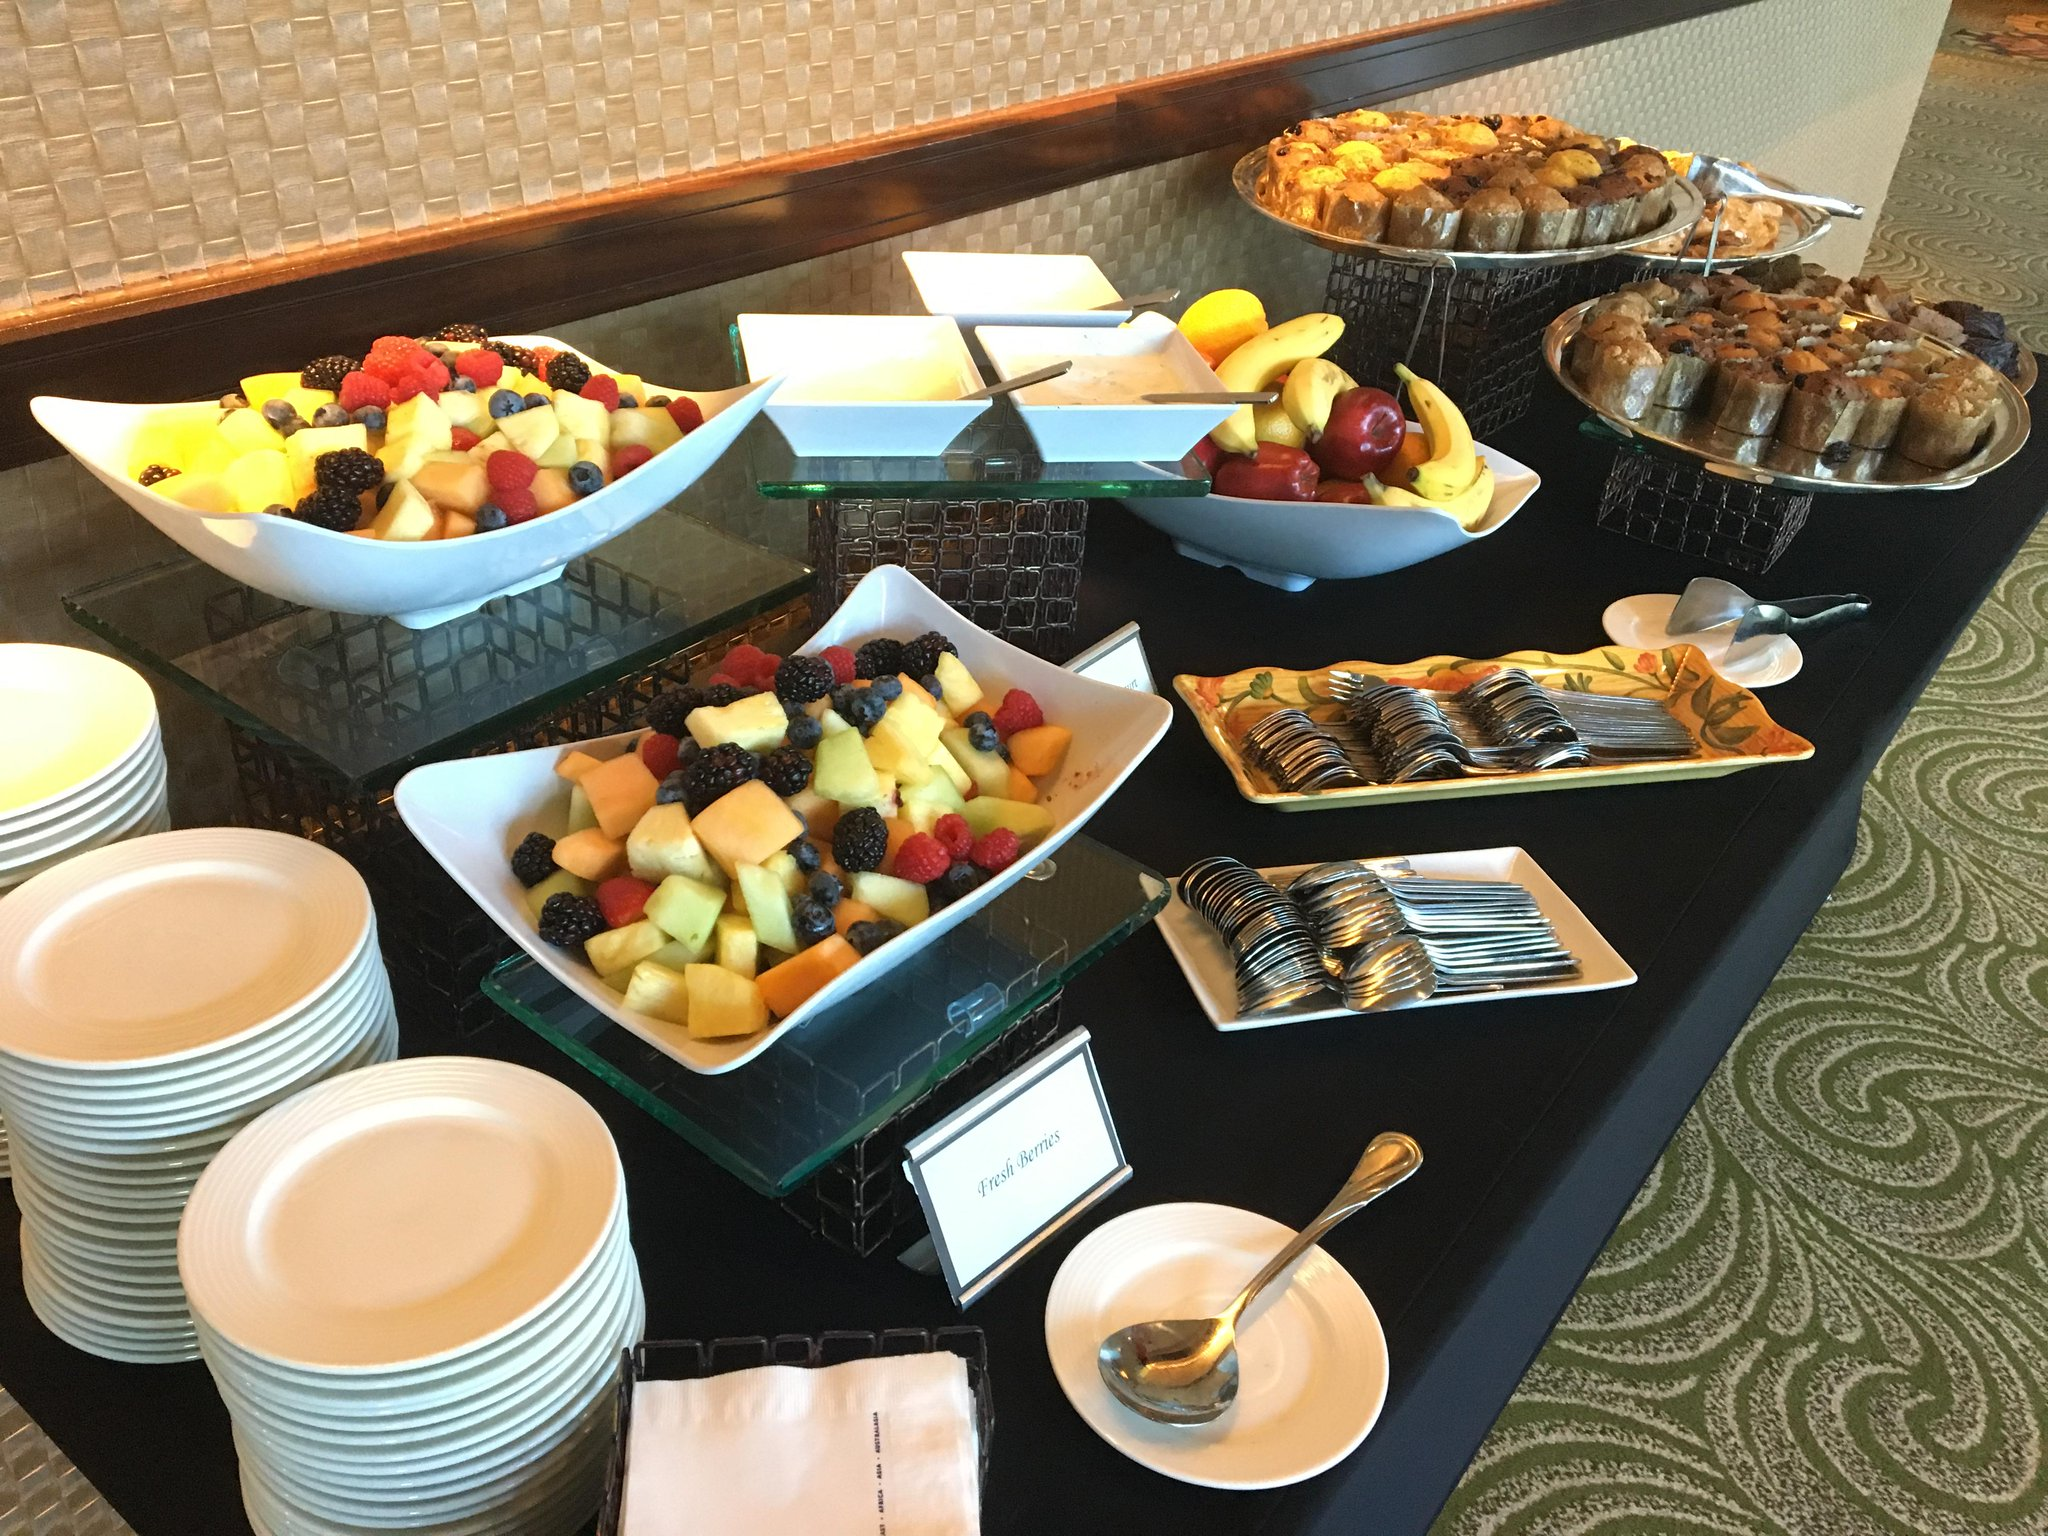 #Breakfast for @Debtwire's Distressed Energy Forum in Houston. #DWenergy16 Missed out? More events here: https://t.co/Hb4e0qI1g9 https://t.co/UgDnDfqEhy